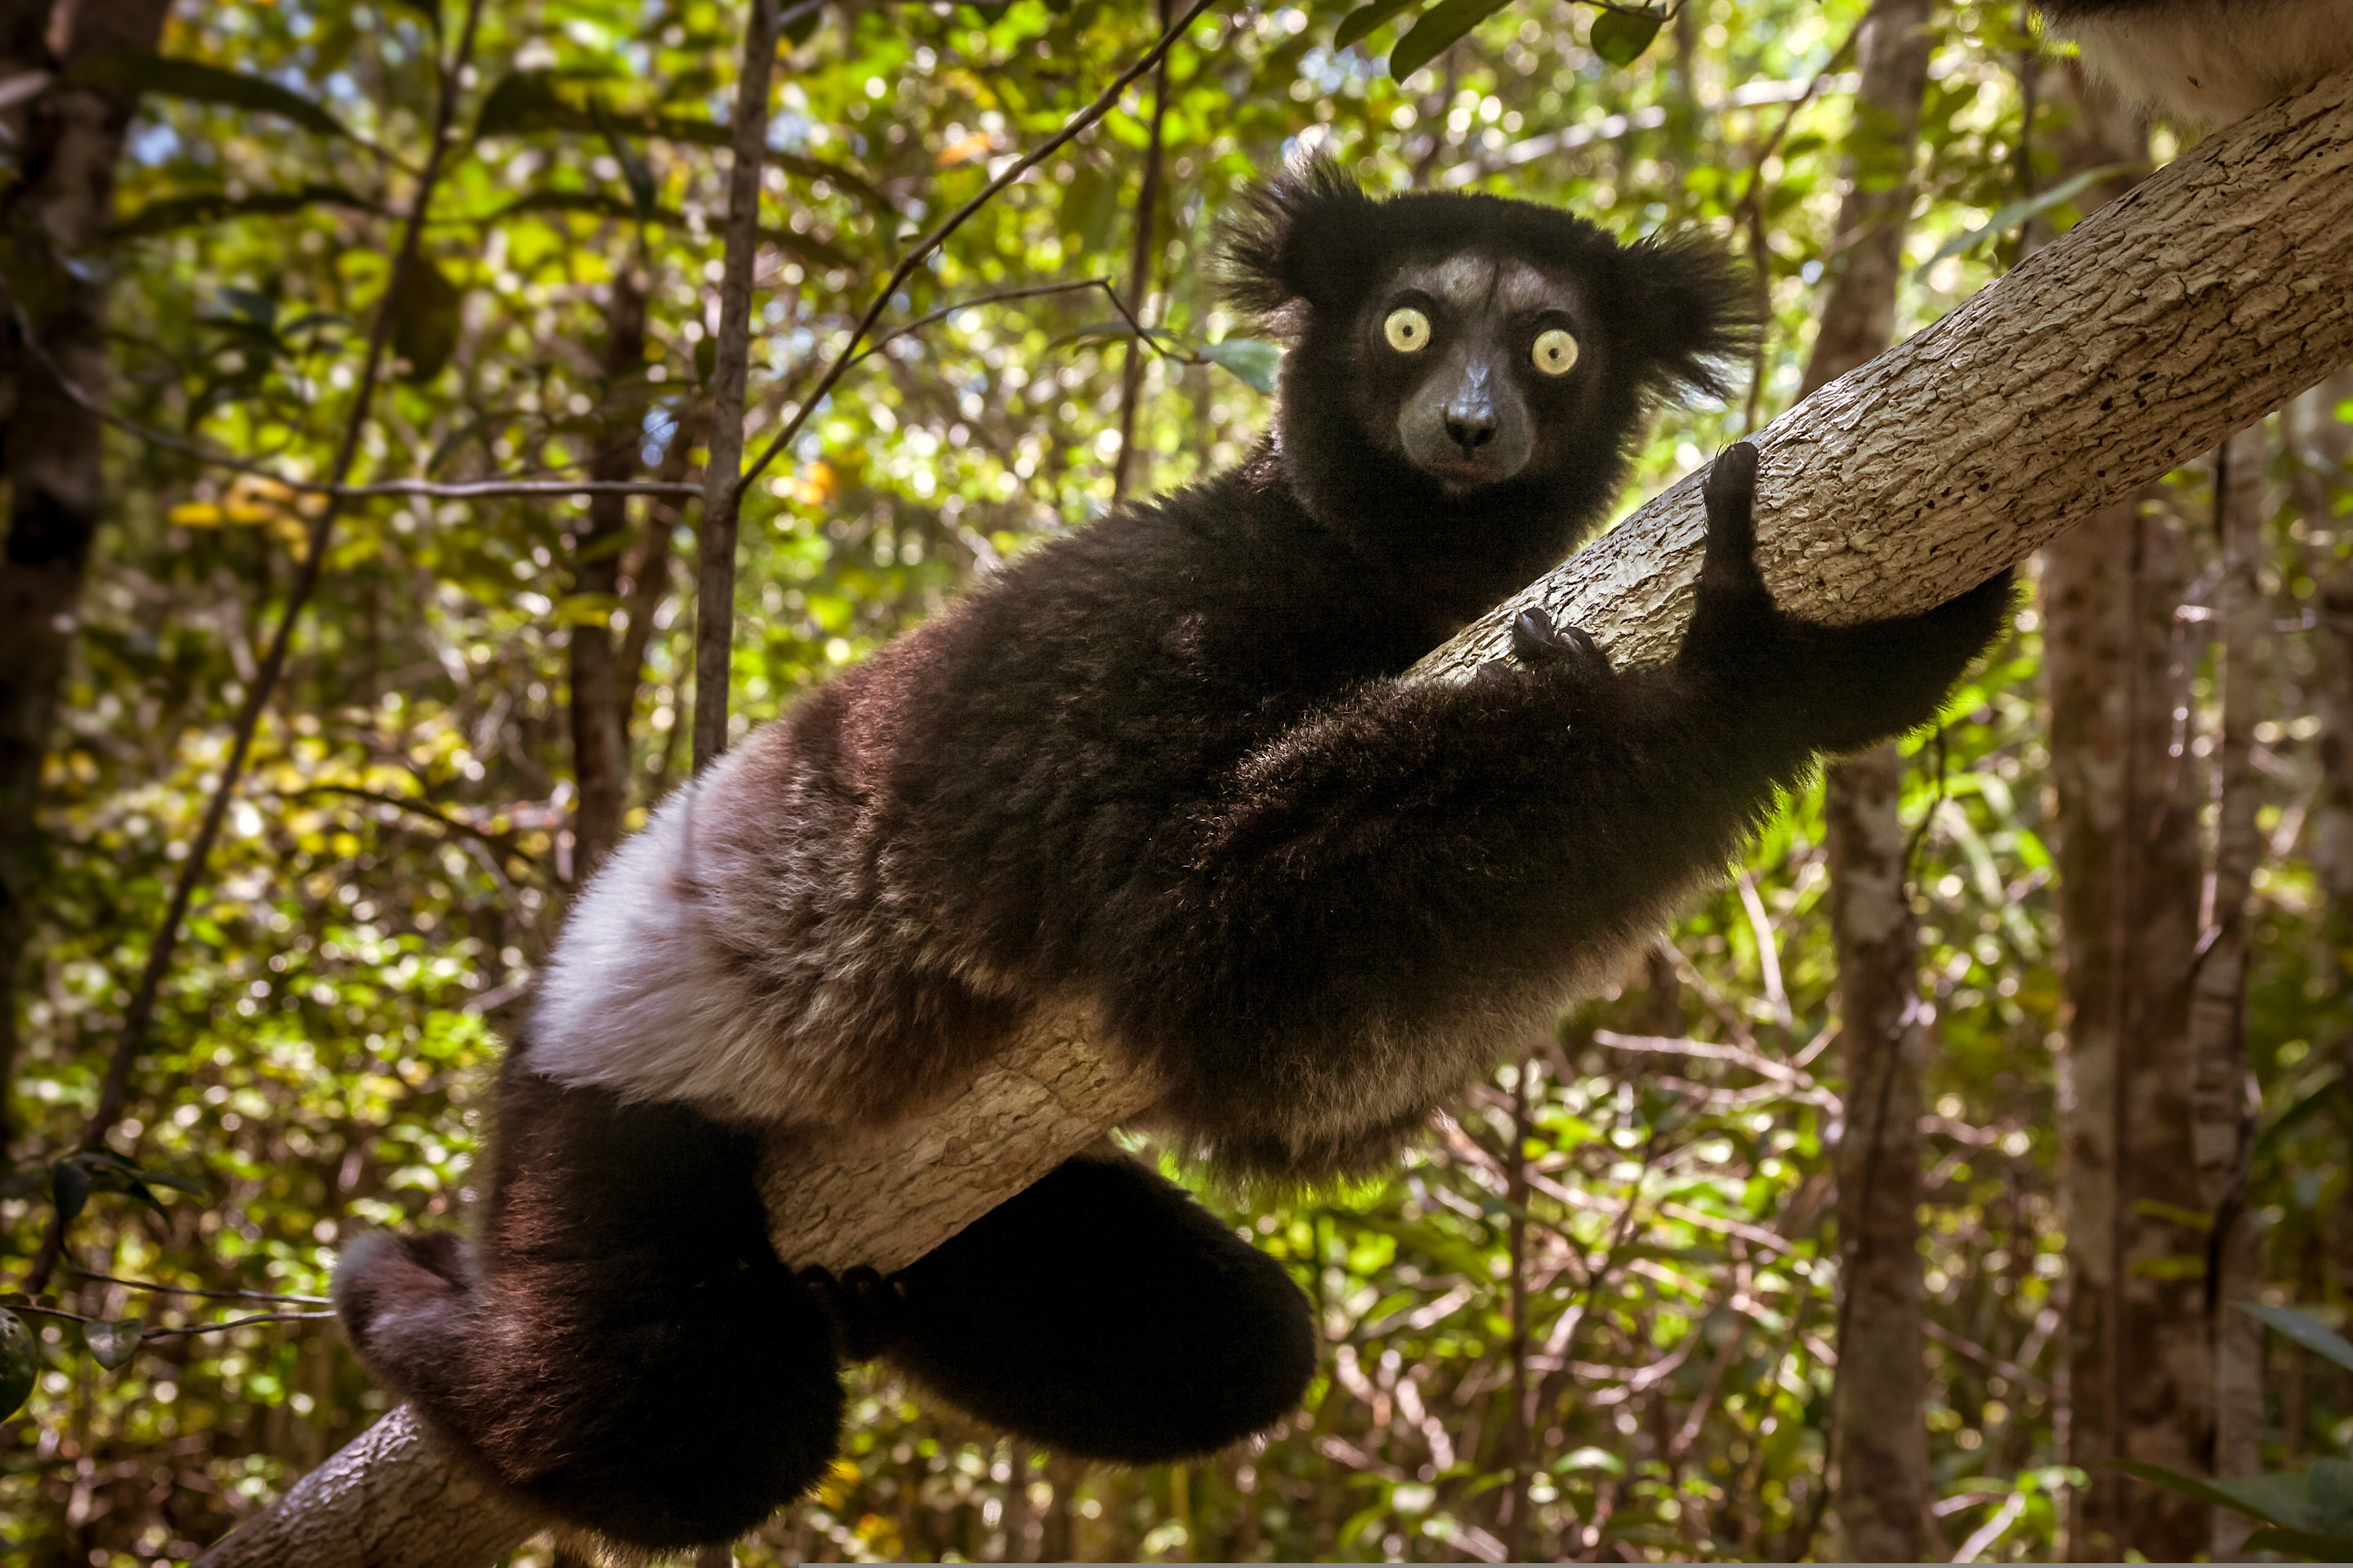 Mammals cannot evolve fast enough to escape current ...